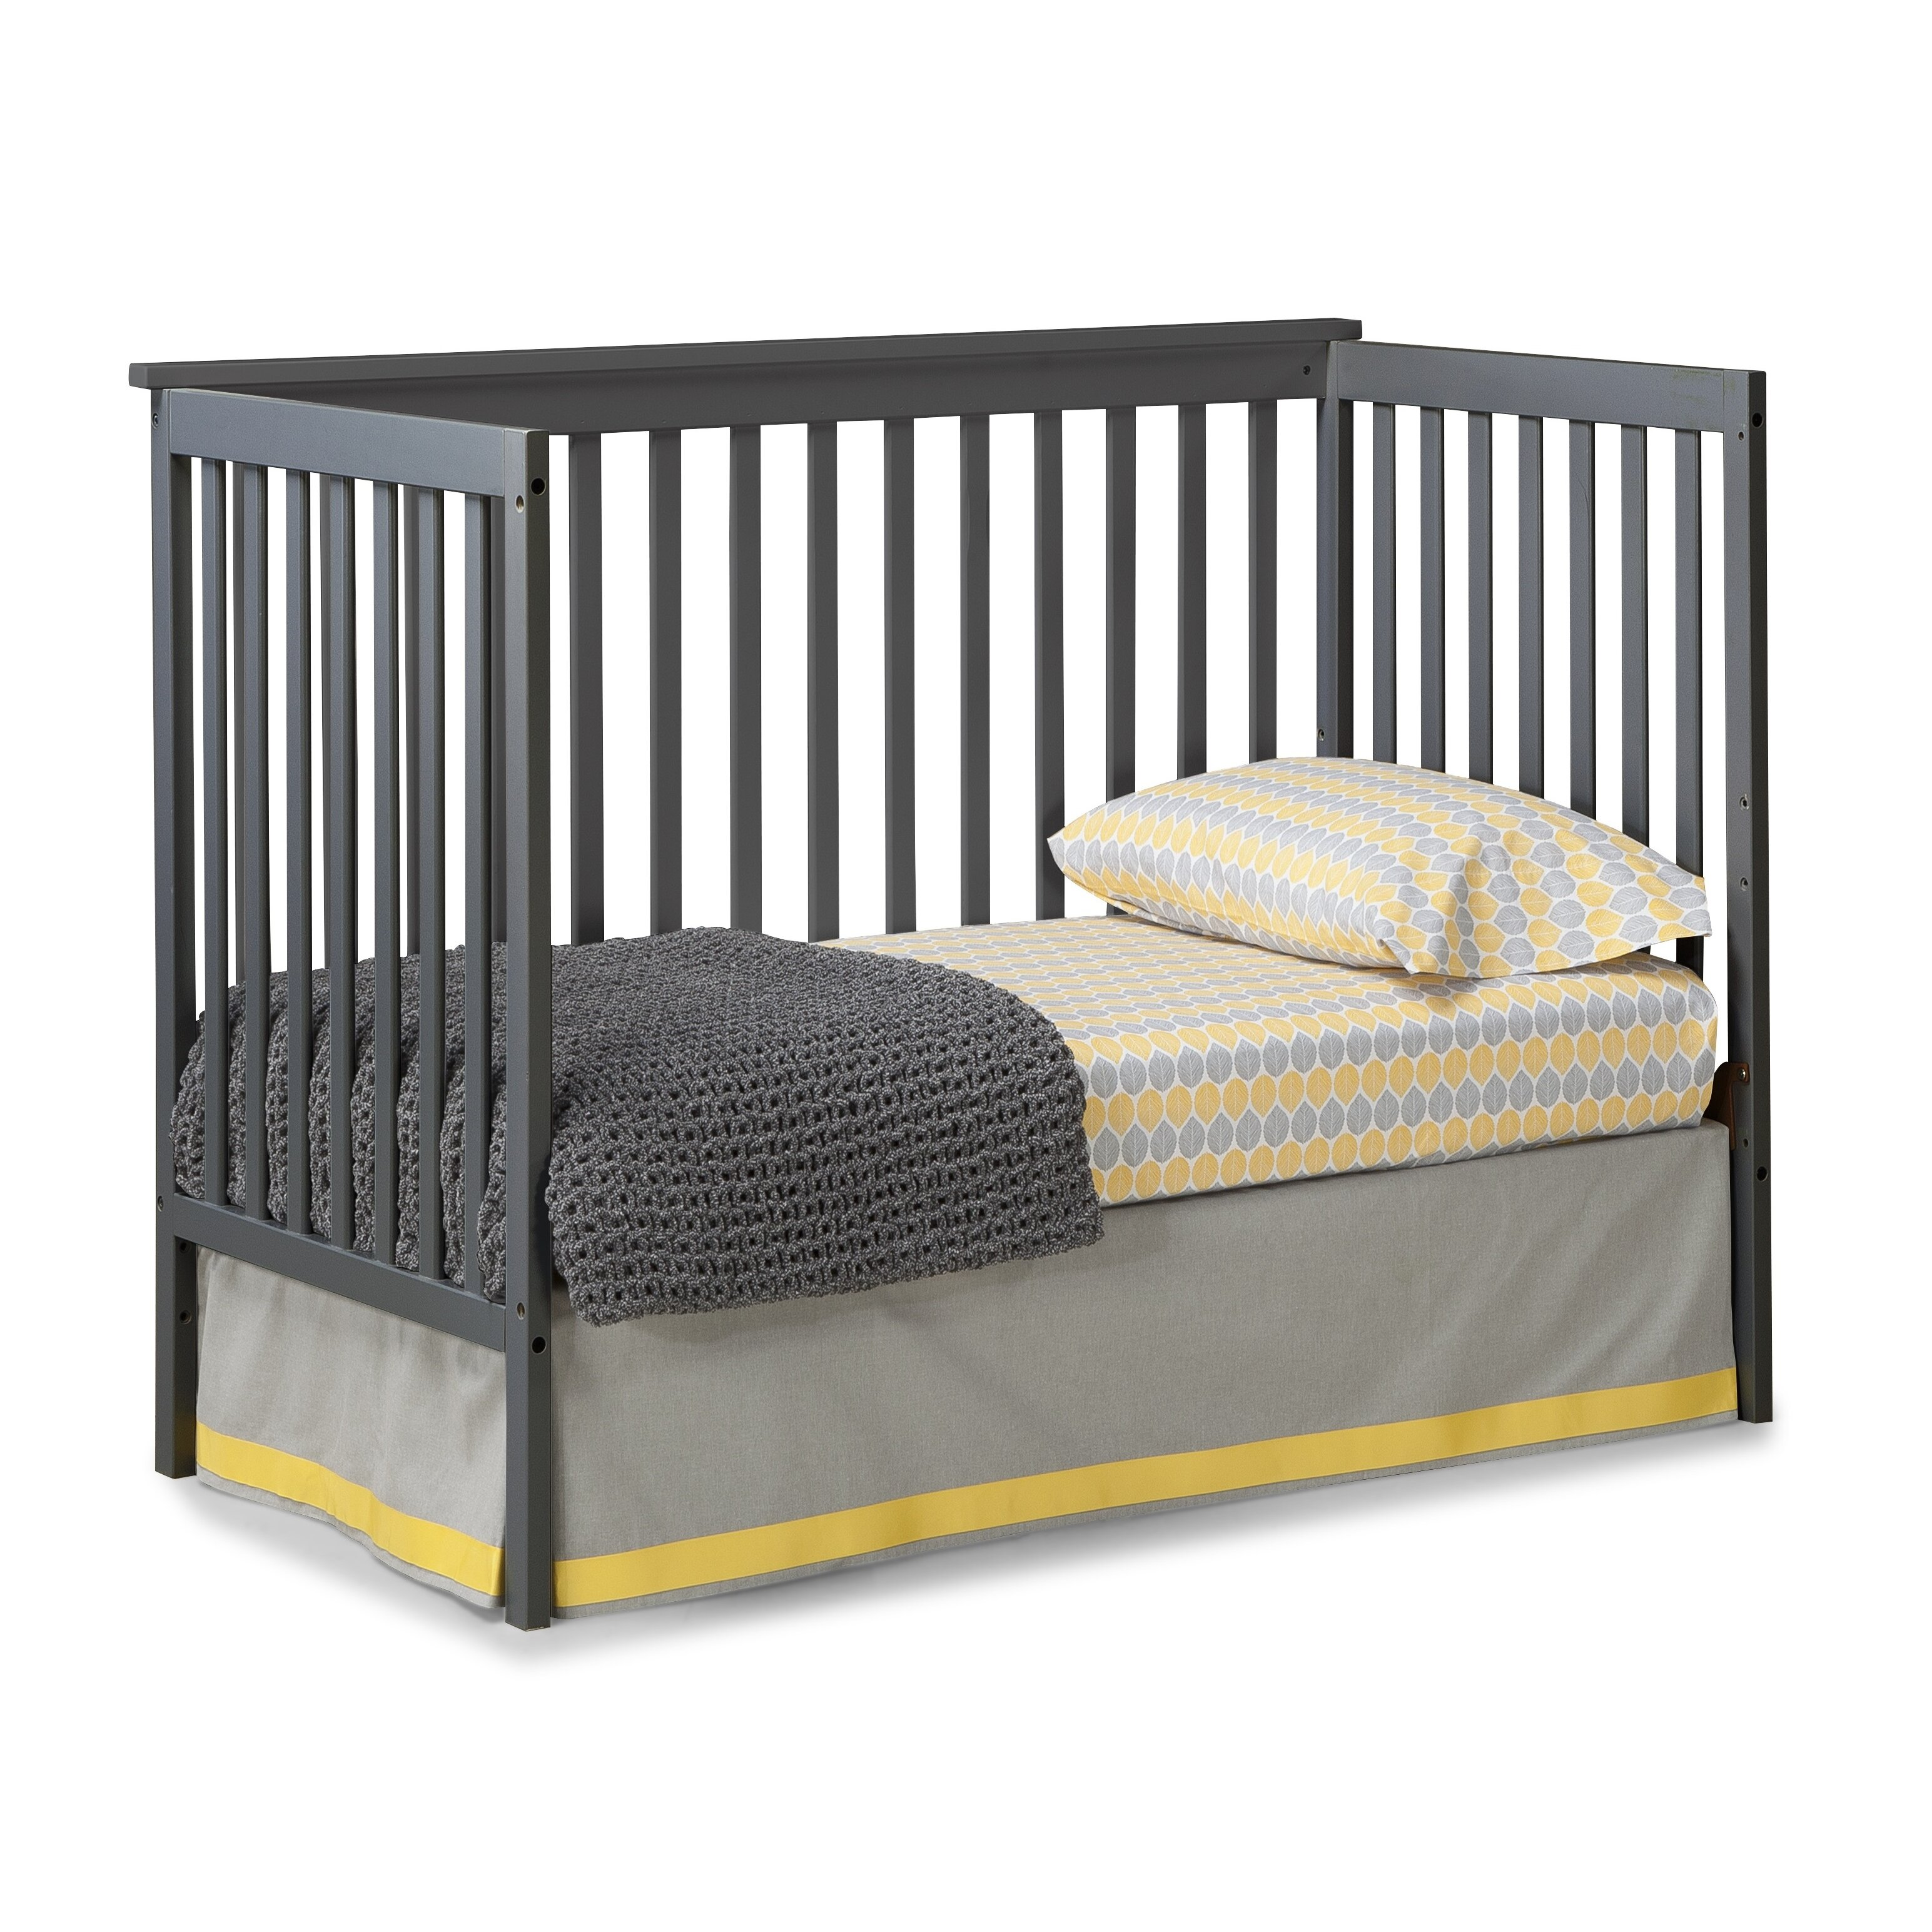 Baby bed hs code - Storkcraft Sheffield 2 In 1 Convertible Crib